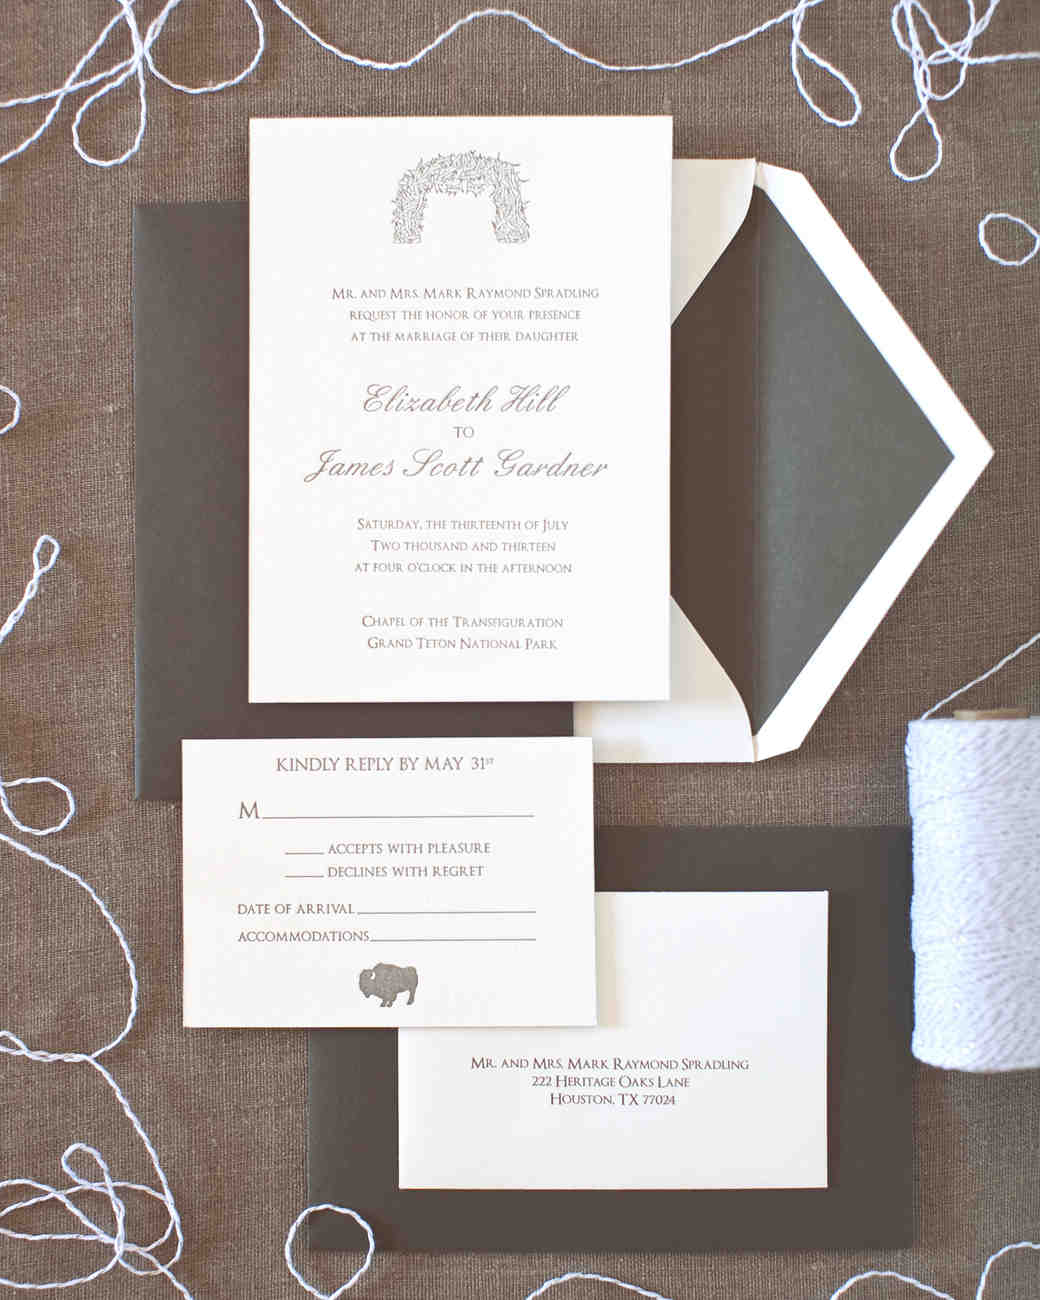 elizabeth-scott-wedding-invite-0314.jpg